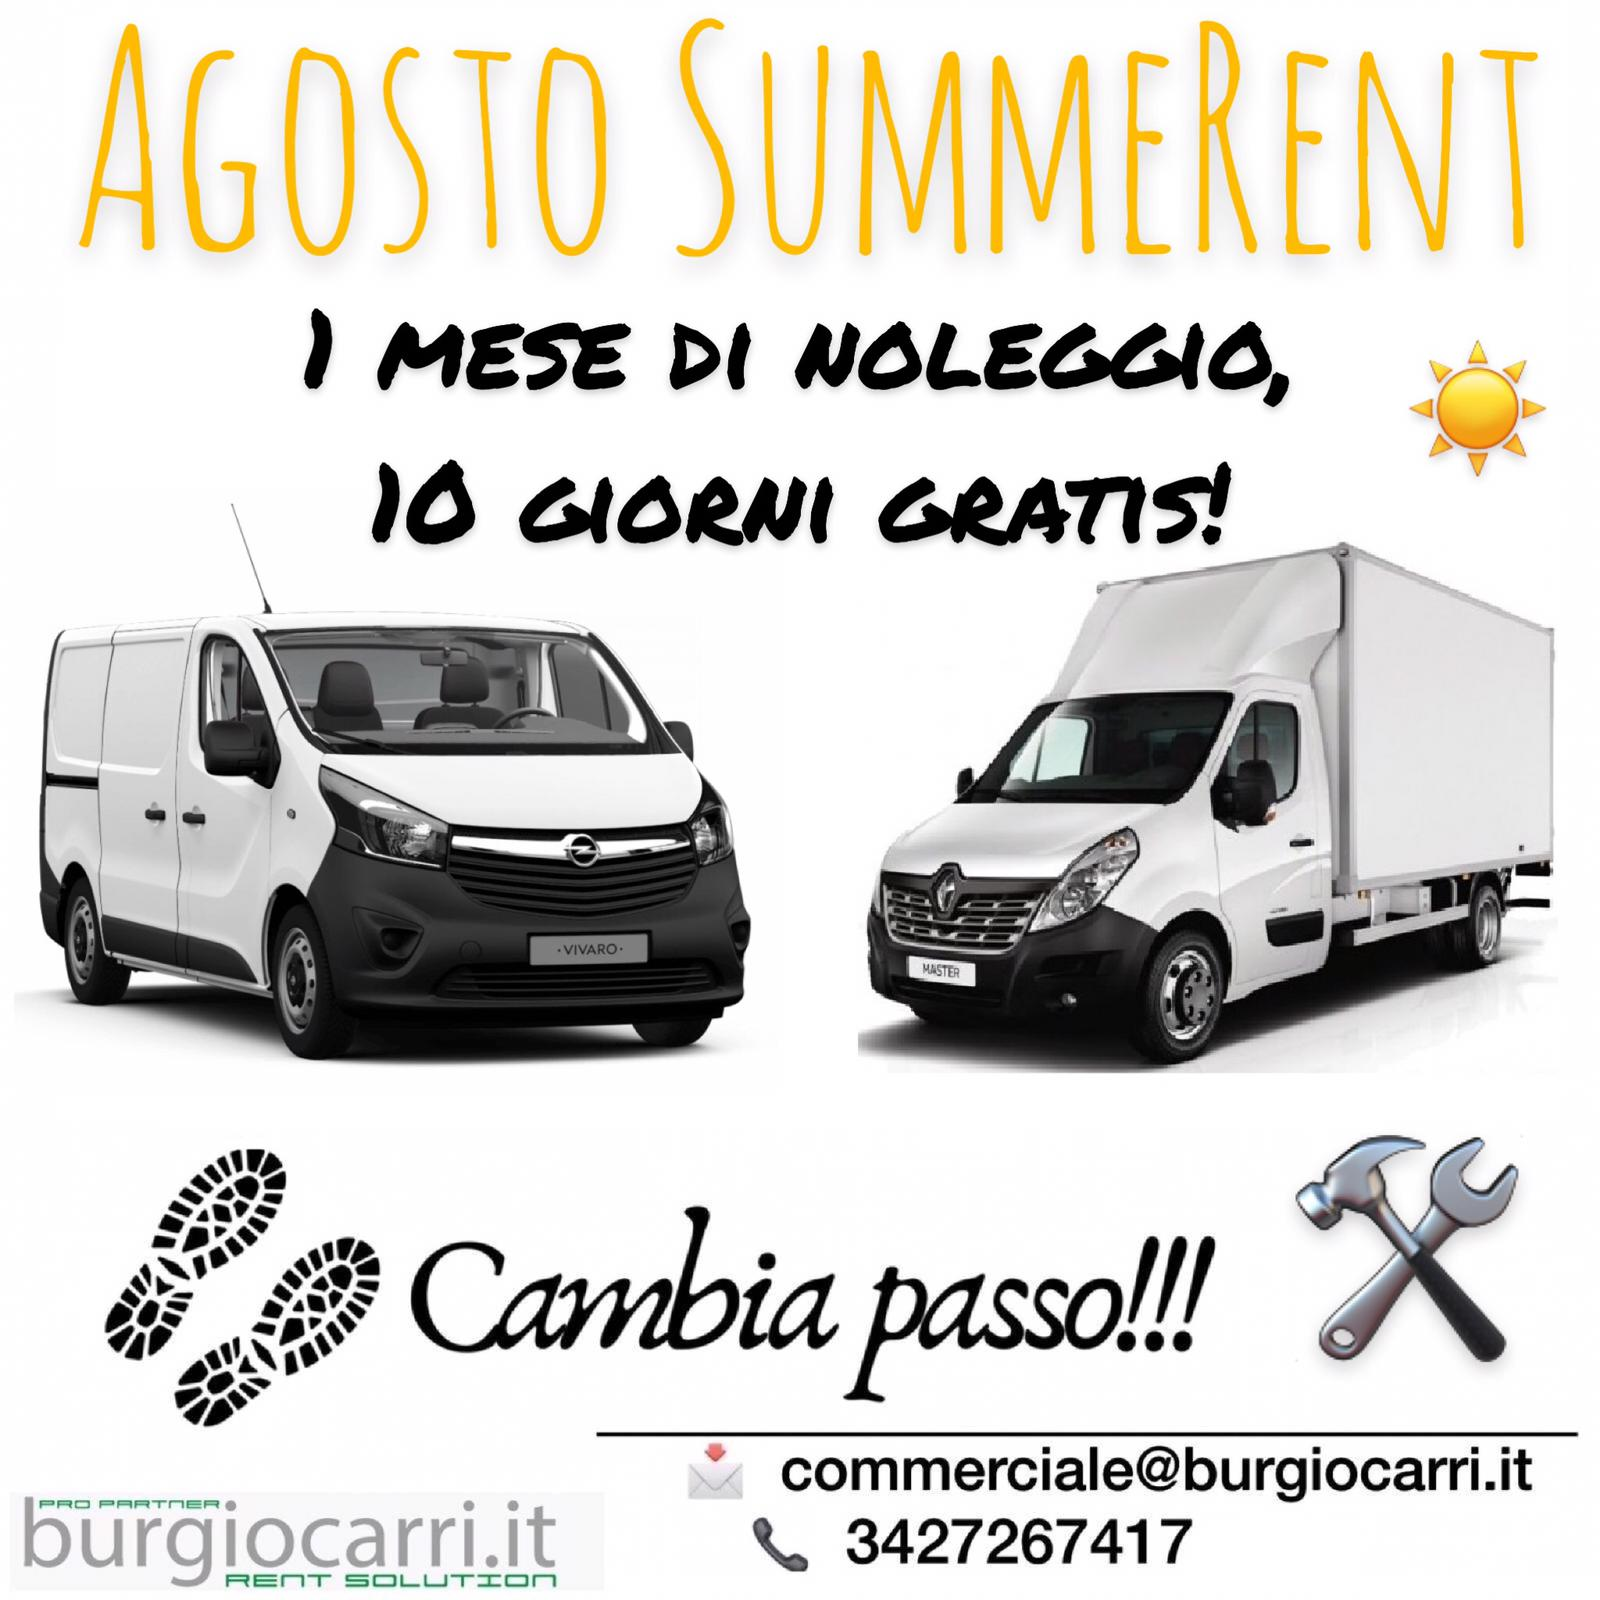 agosto-summerent